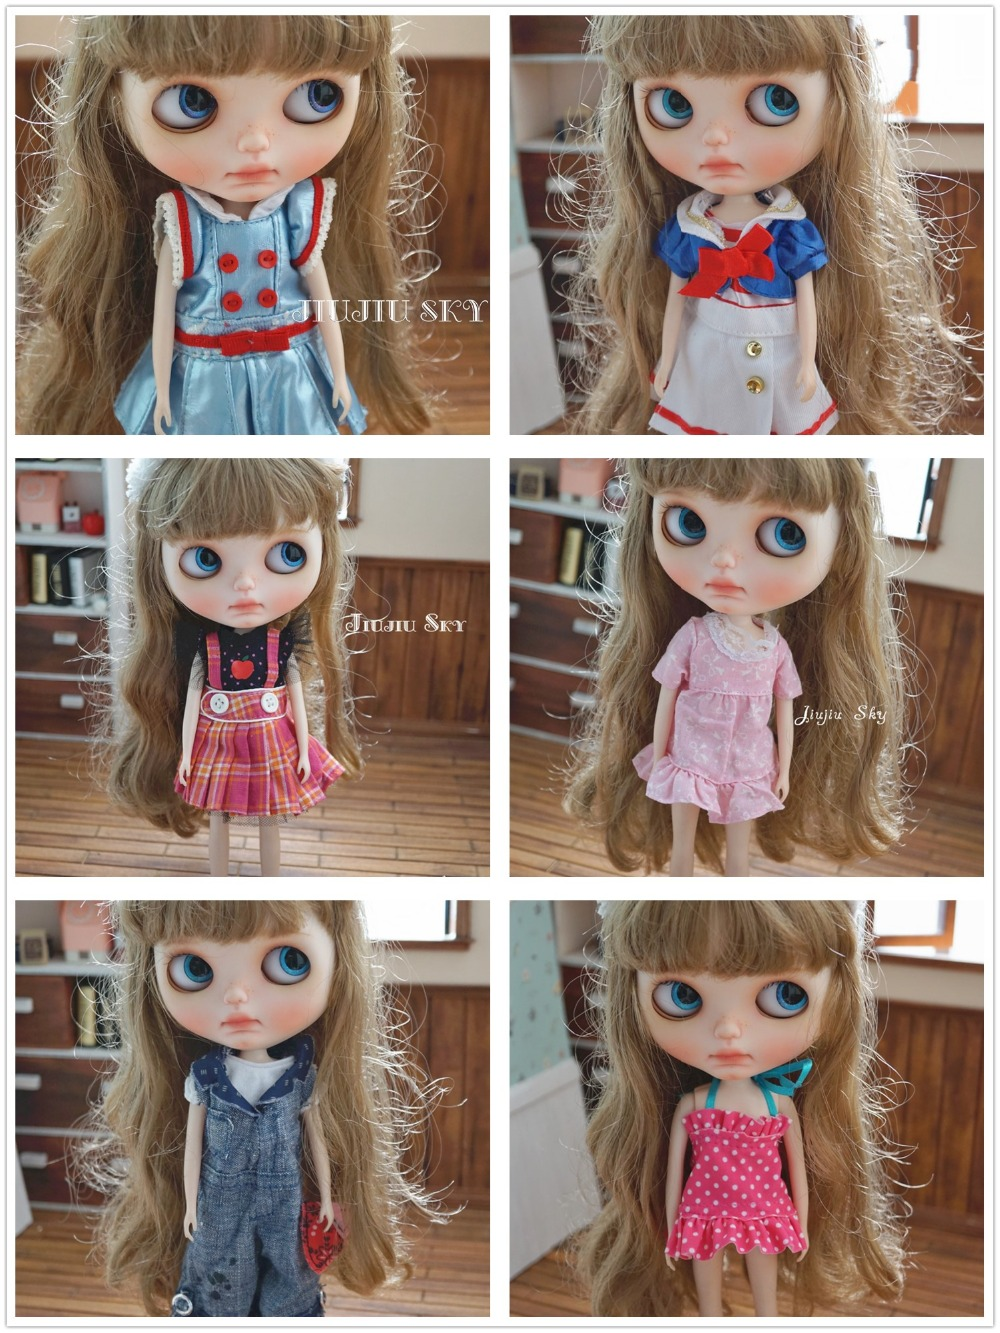 Free Shipping doll Accessories Doll clothes For Blyth Licca Azone Doll Toys Hot